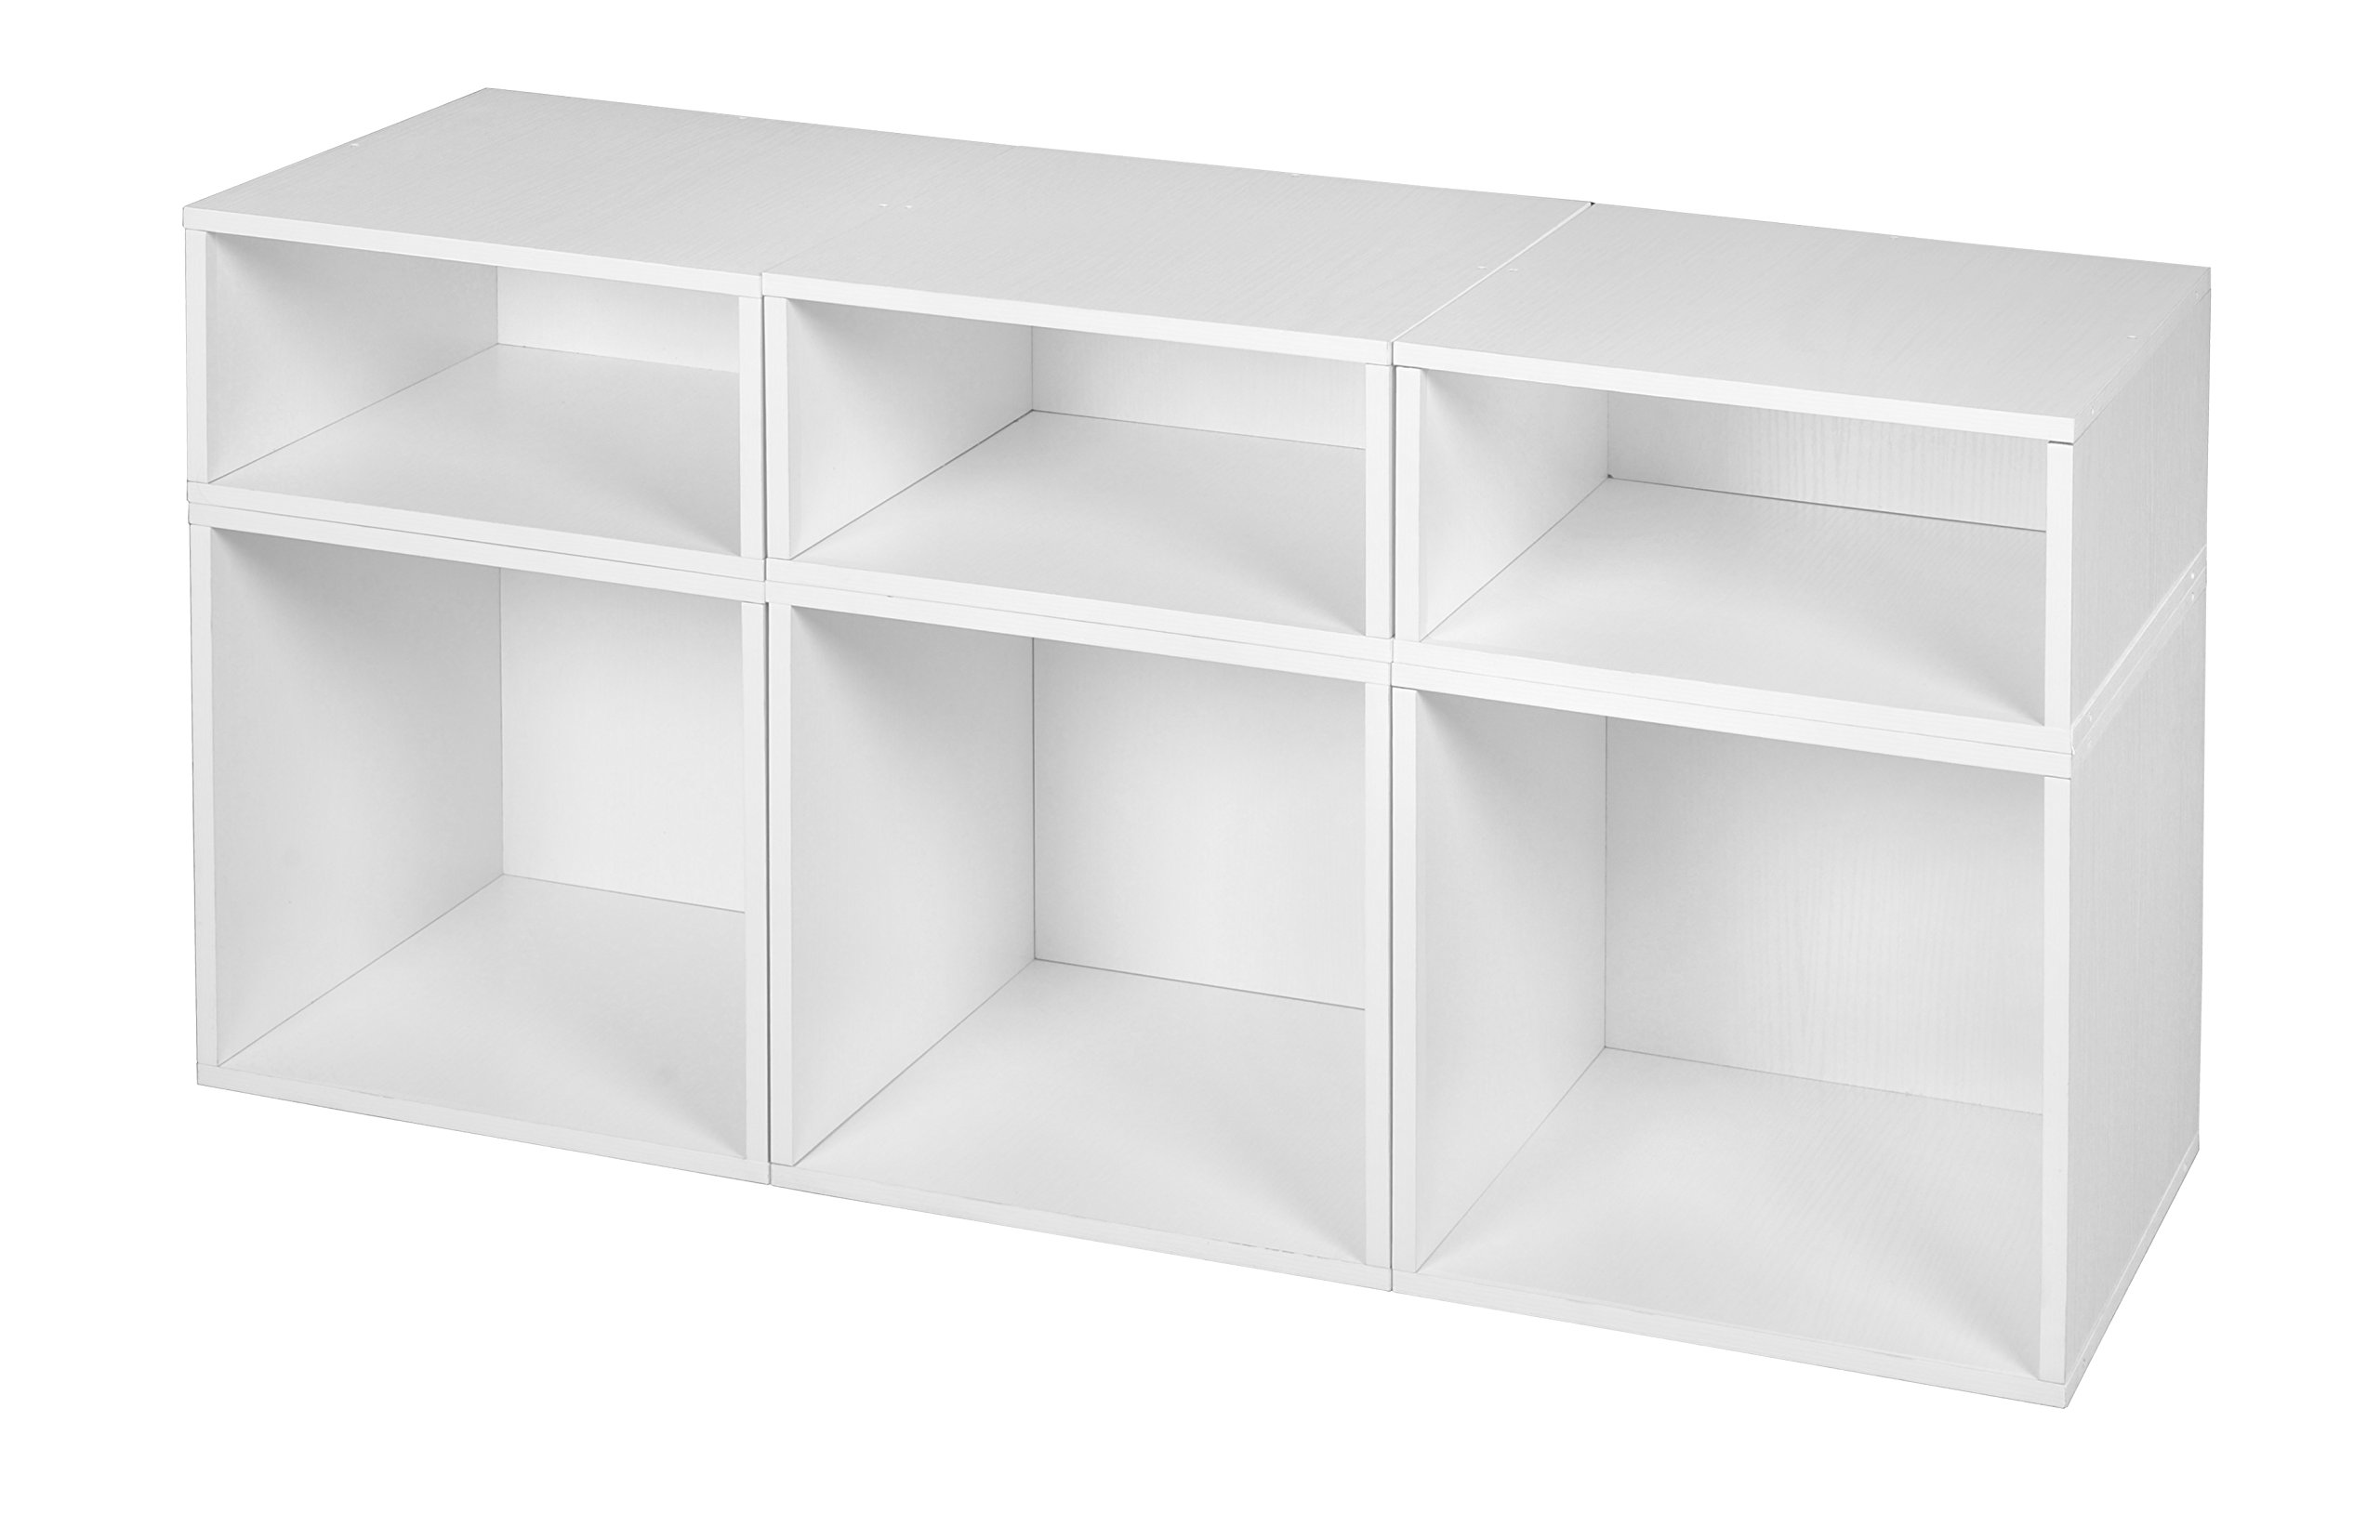 Niche PC3F3HPKWH Cubo Deluxe Storage Set with with Full and Half Size Cubes, 3 3, White